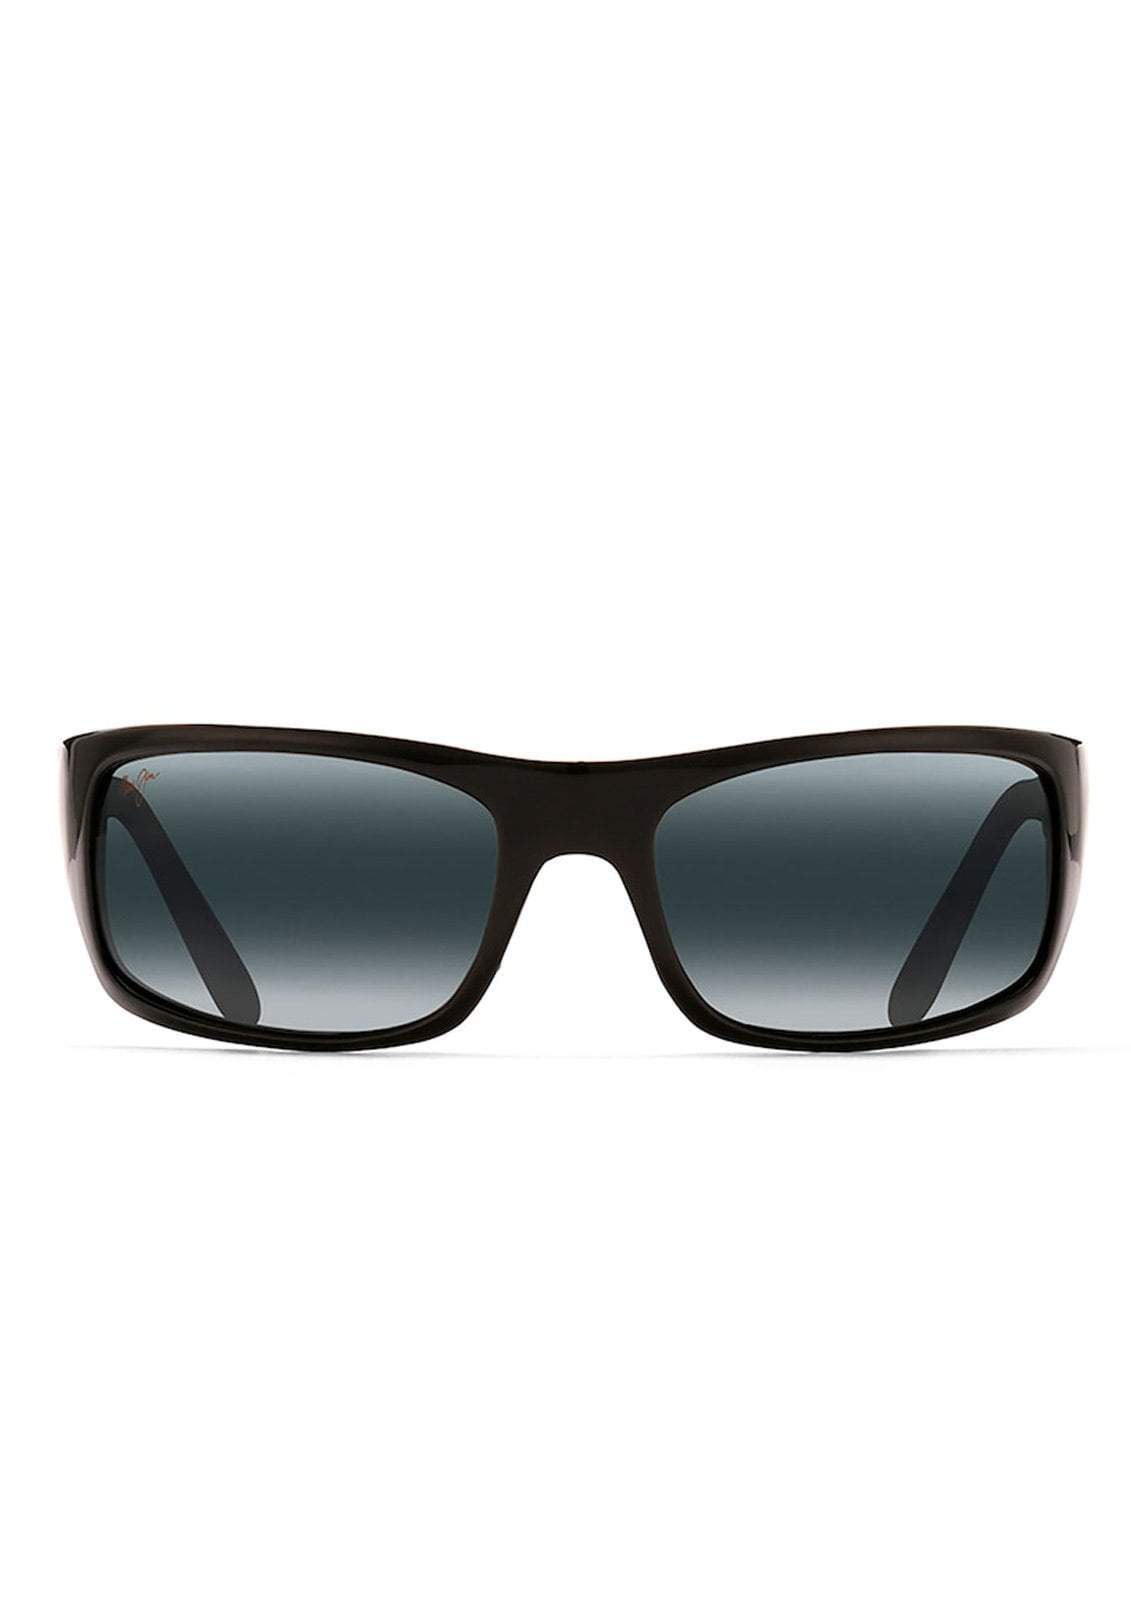 Peahi Sunglasses